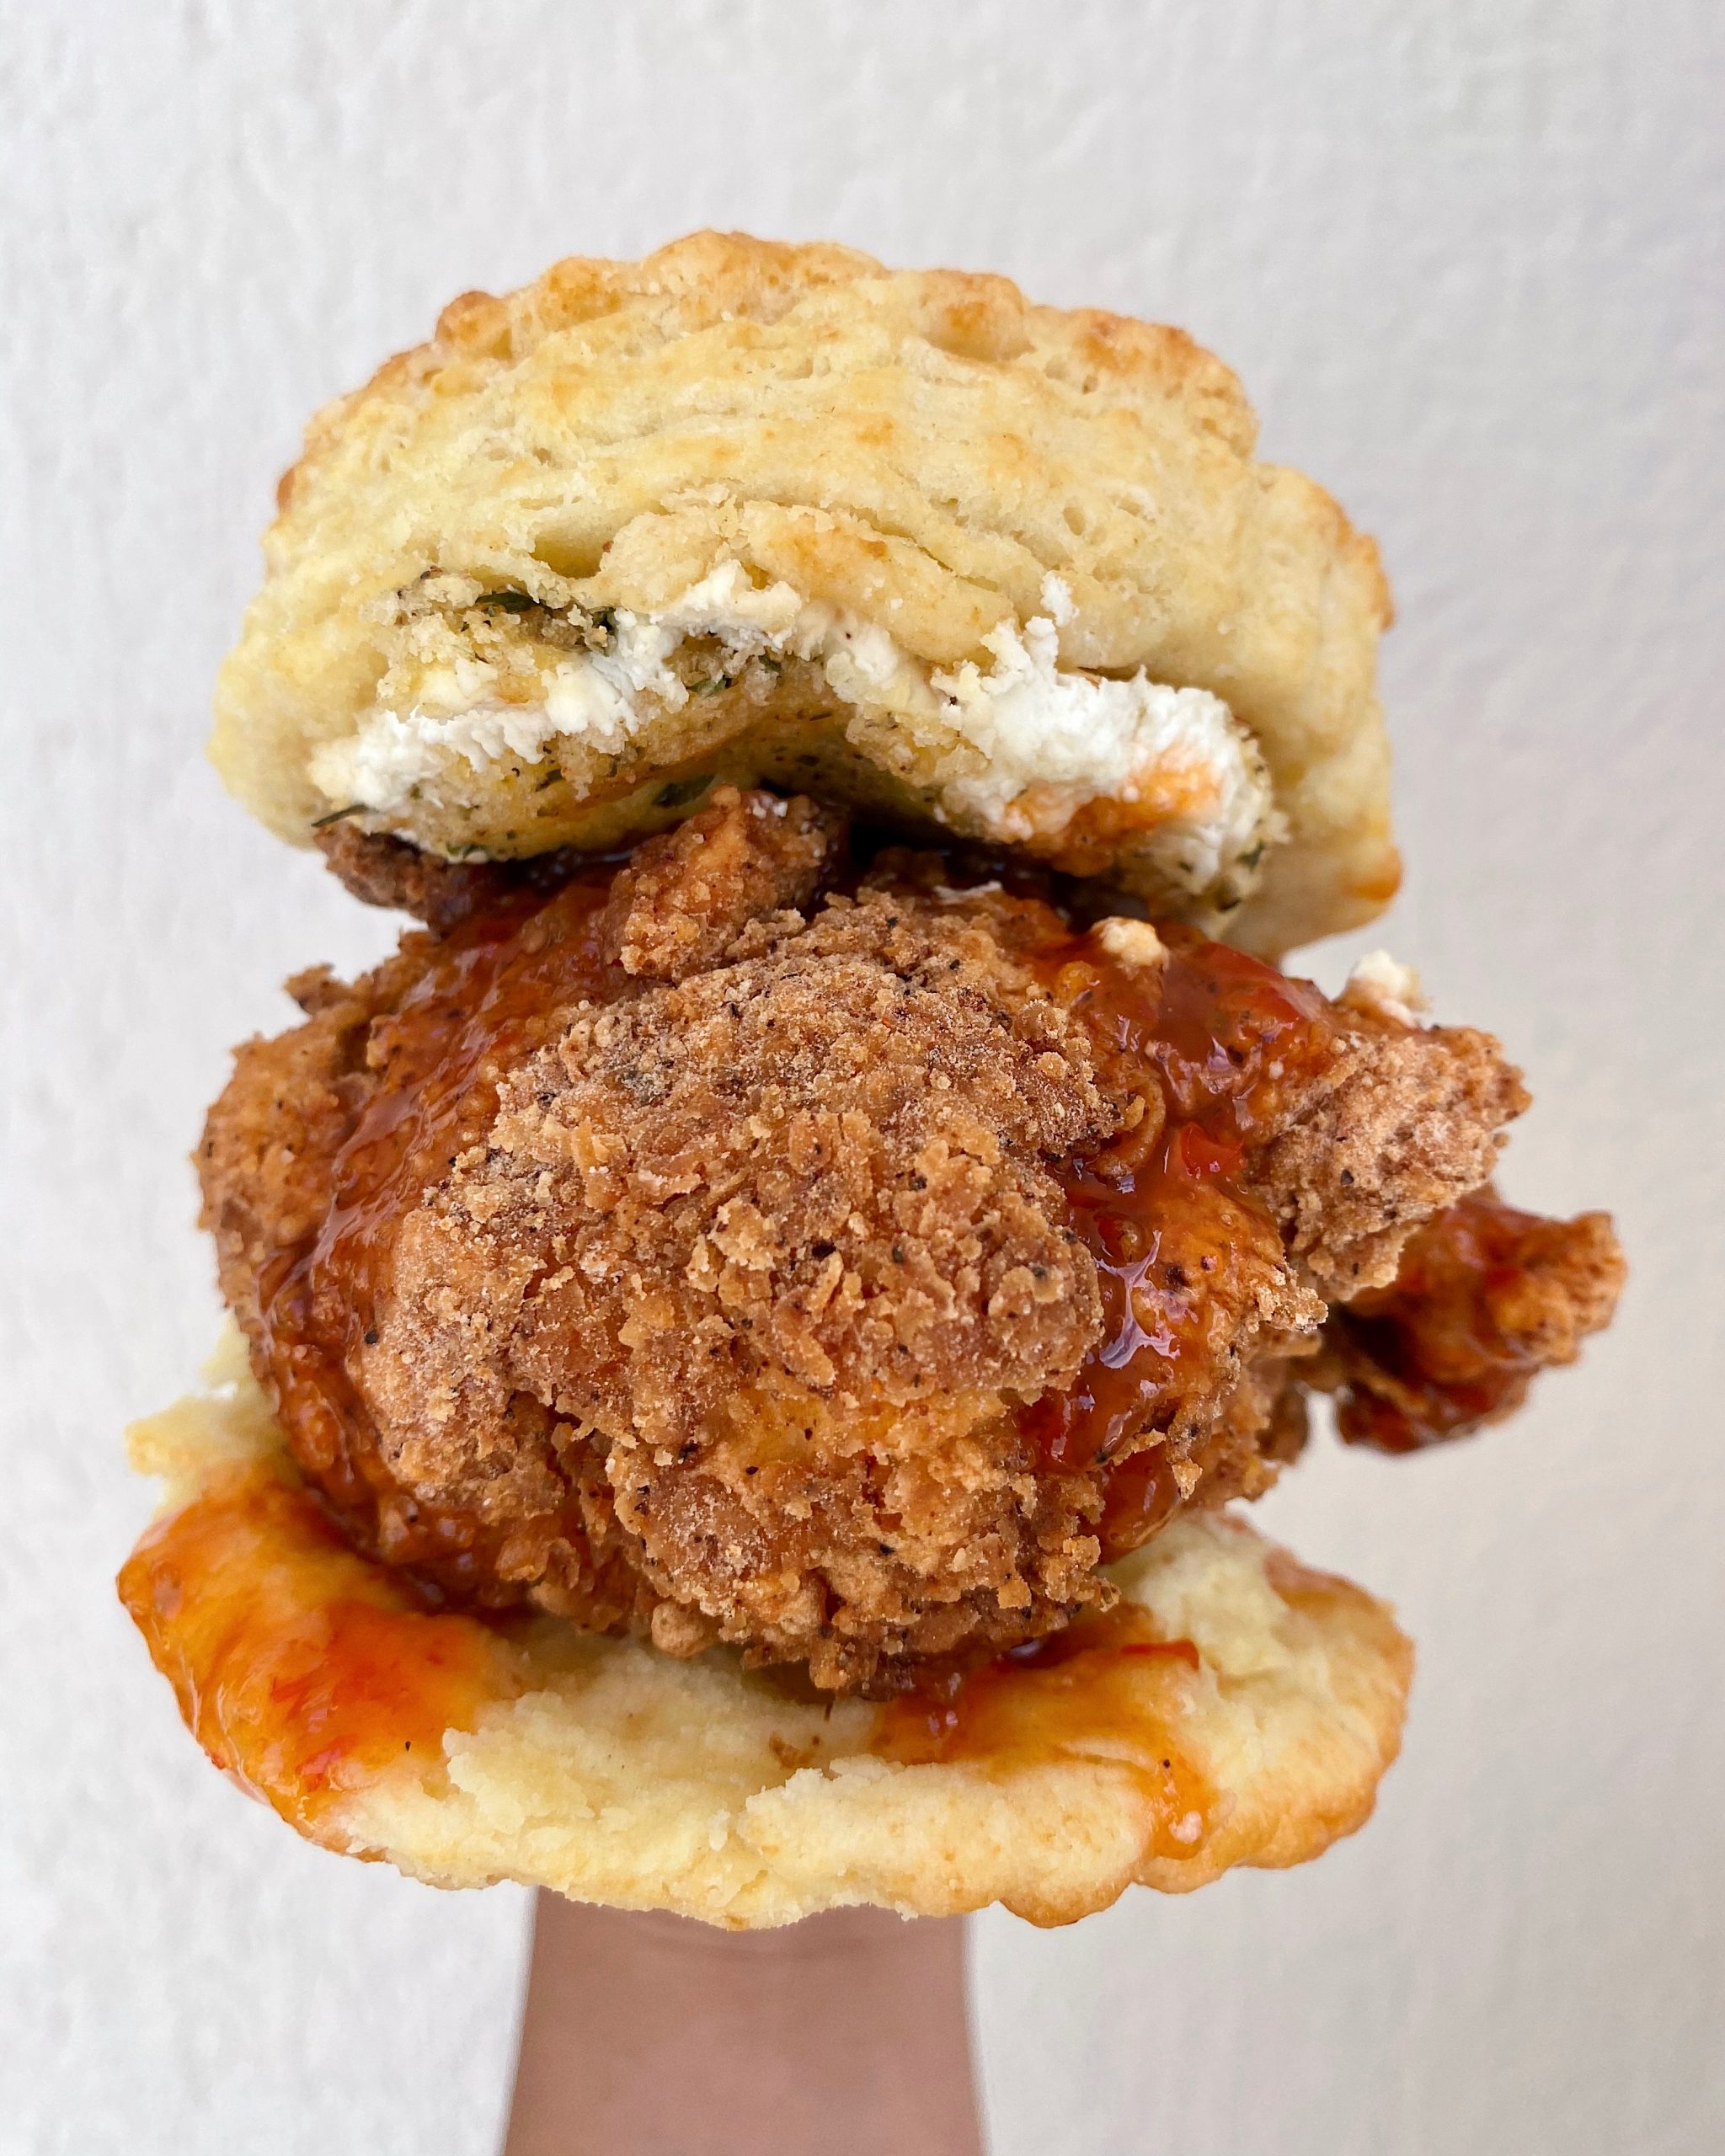 The Squawking Goat fried chicken biscuit at Maple Street Biscuit Company